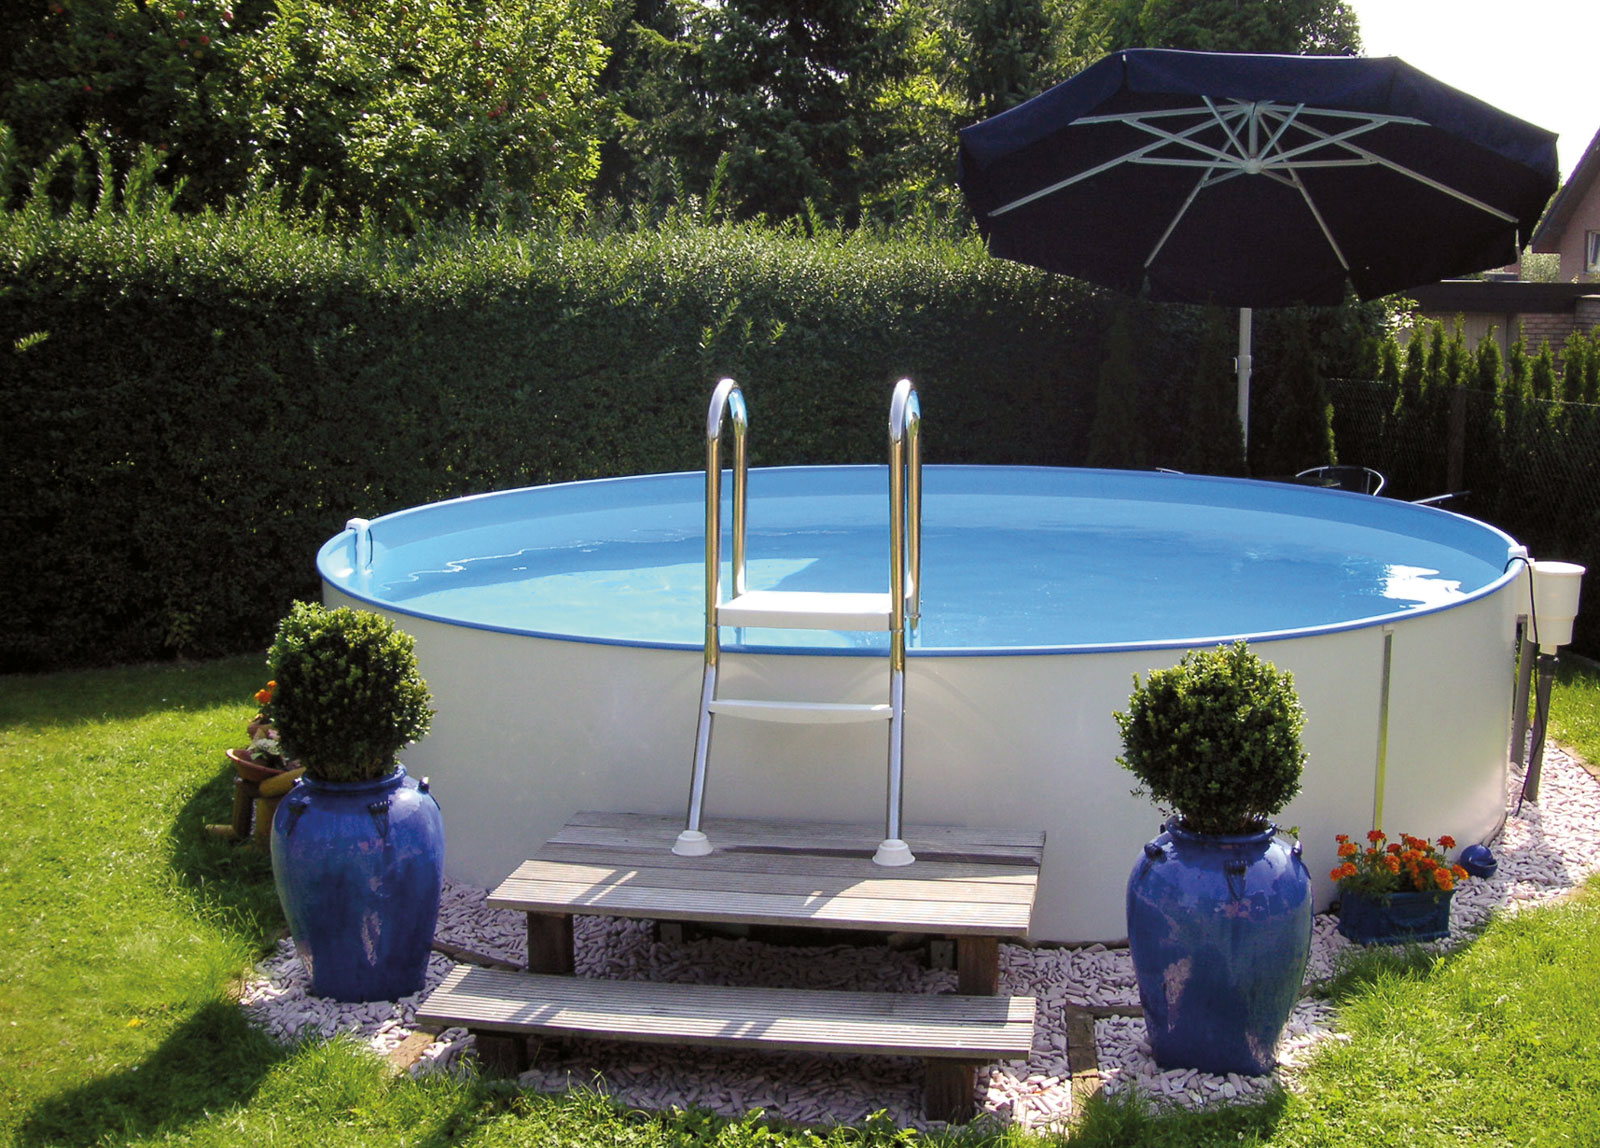 stahlwandpool komplettset rund sunday pools onlineshop